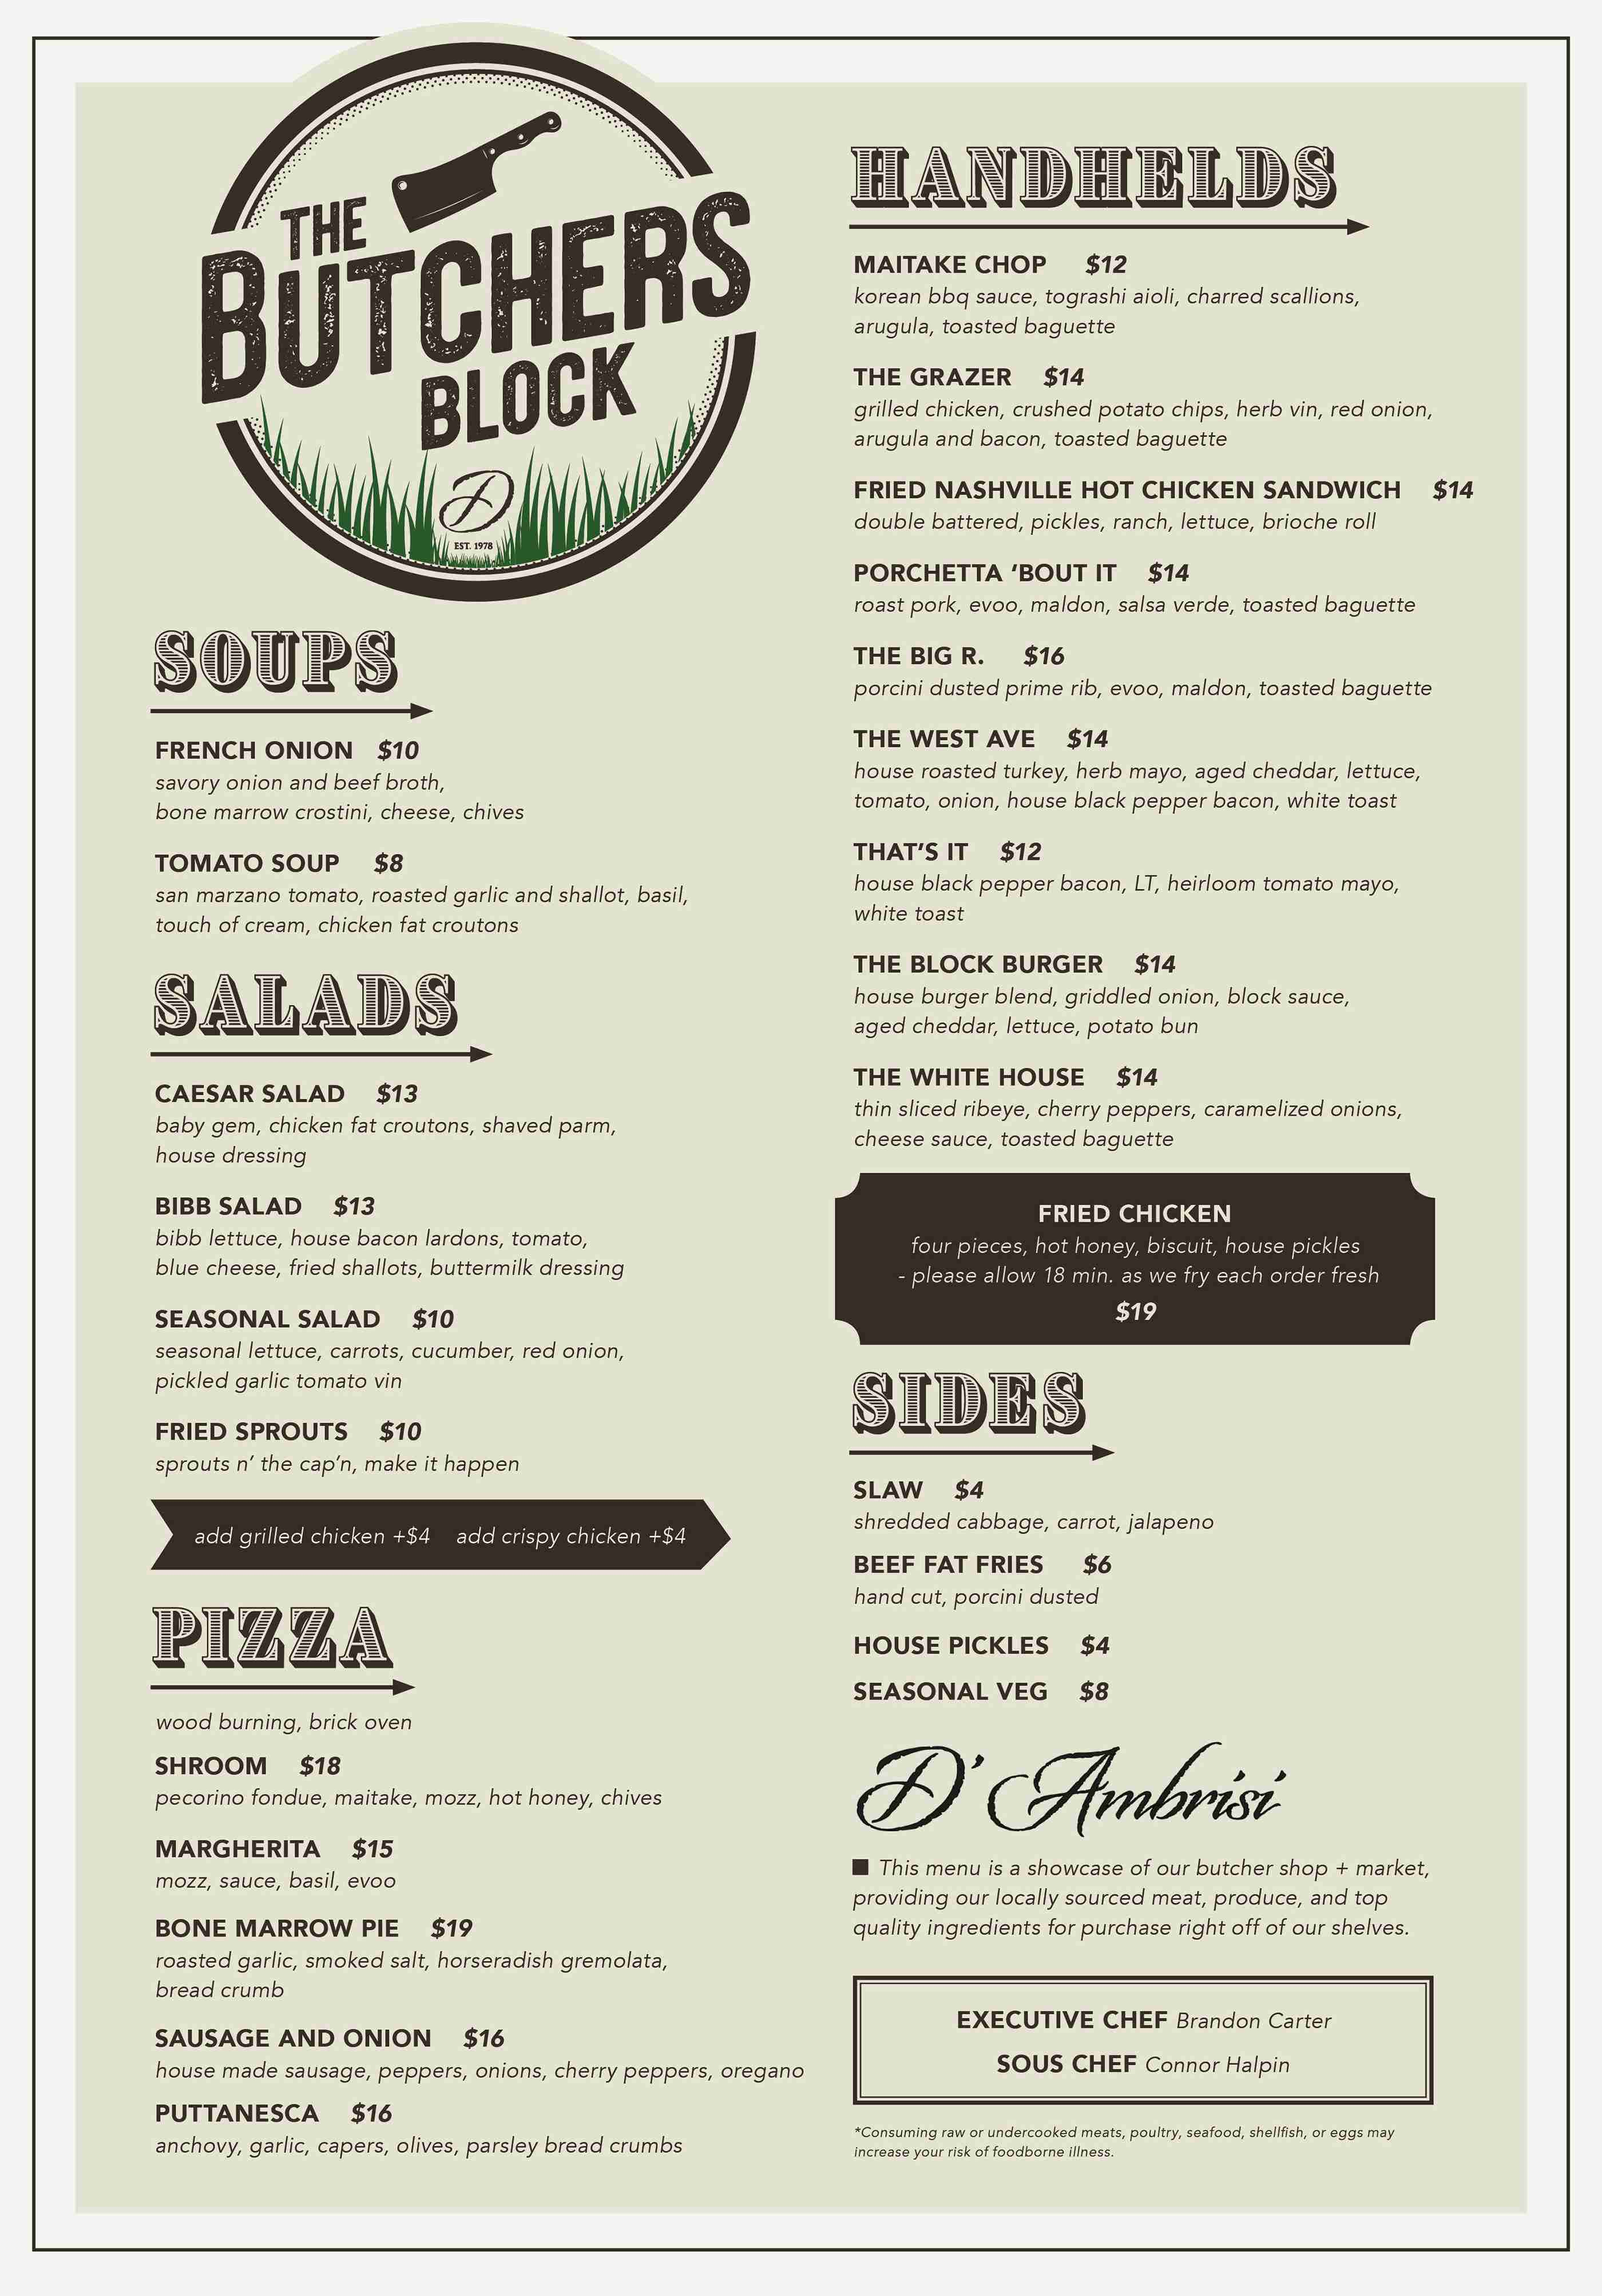 The Butcher's Block Dambrisi Long Branch 8